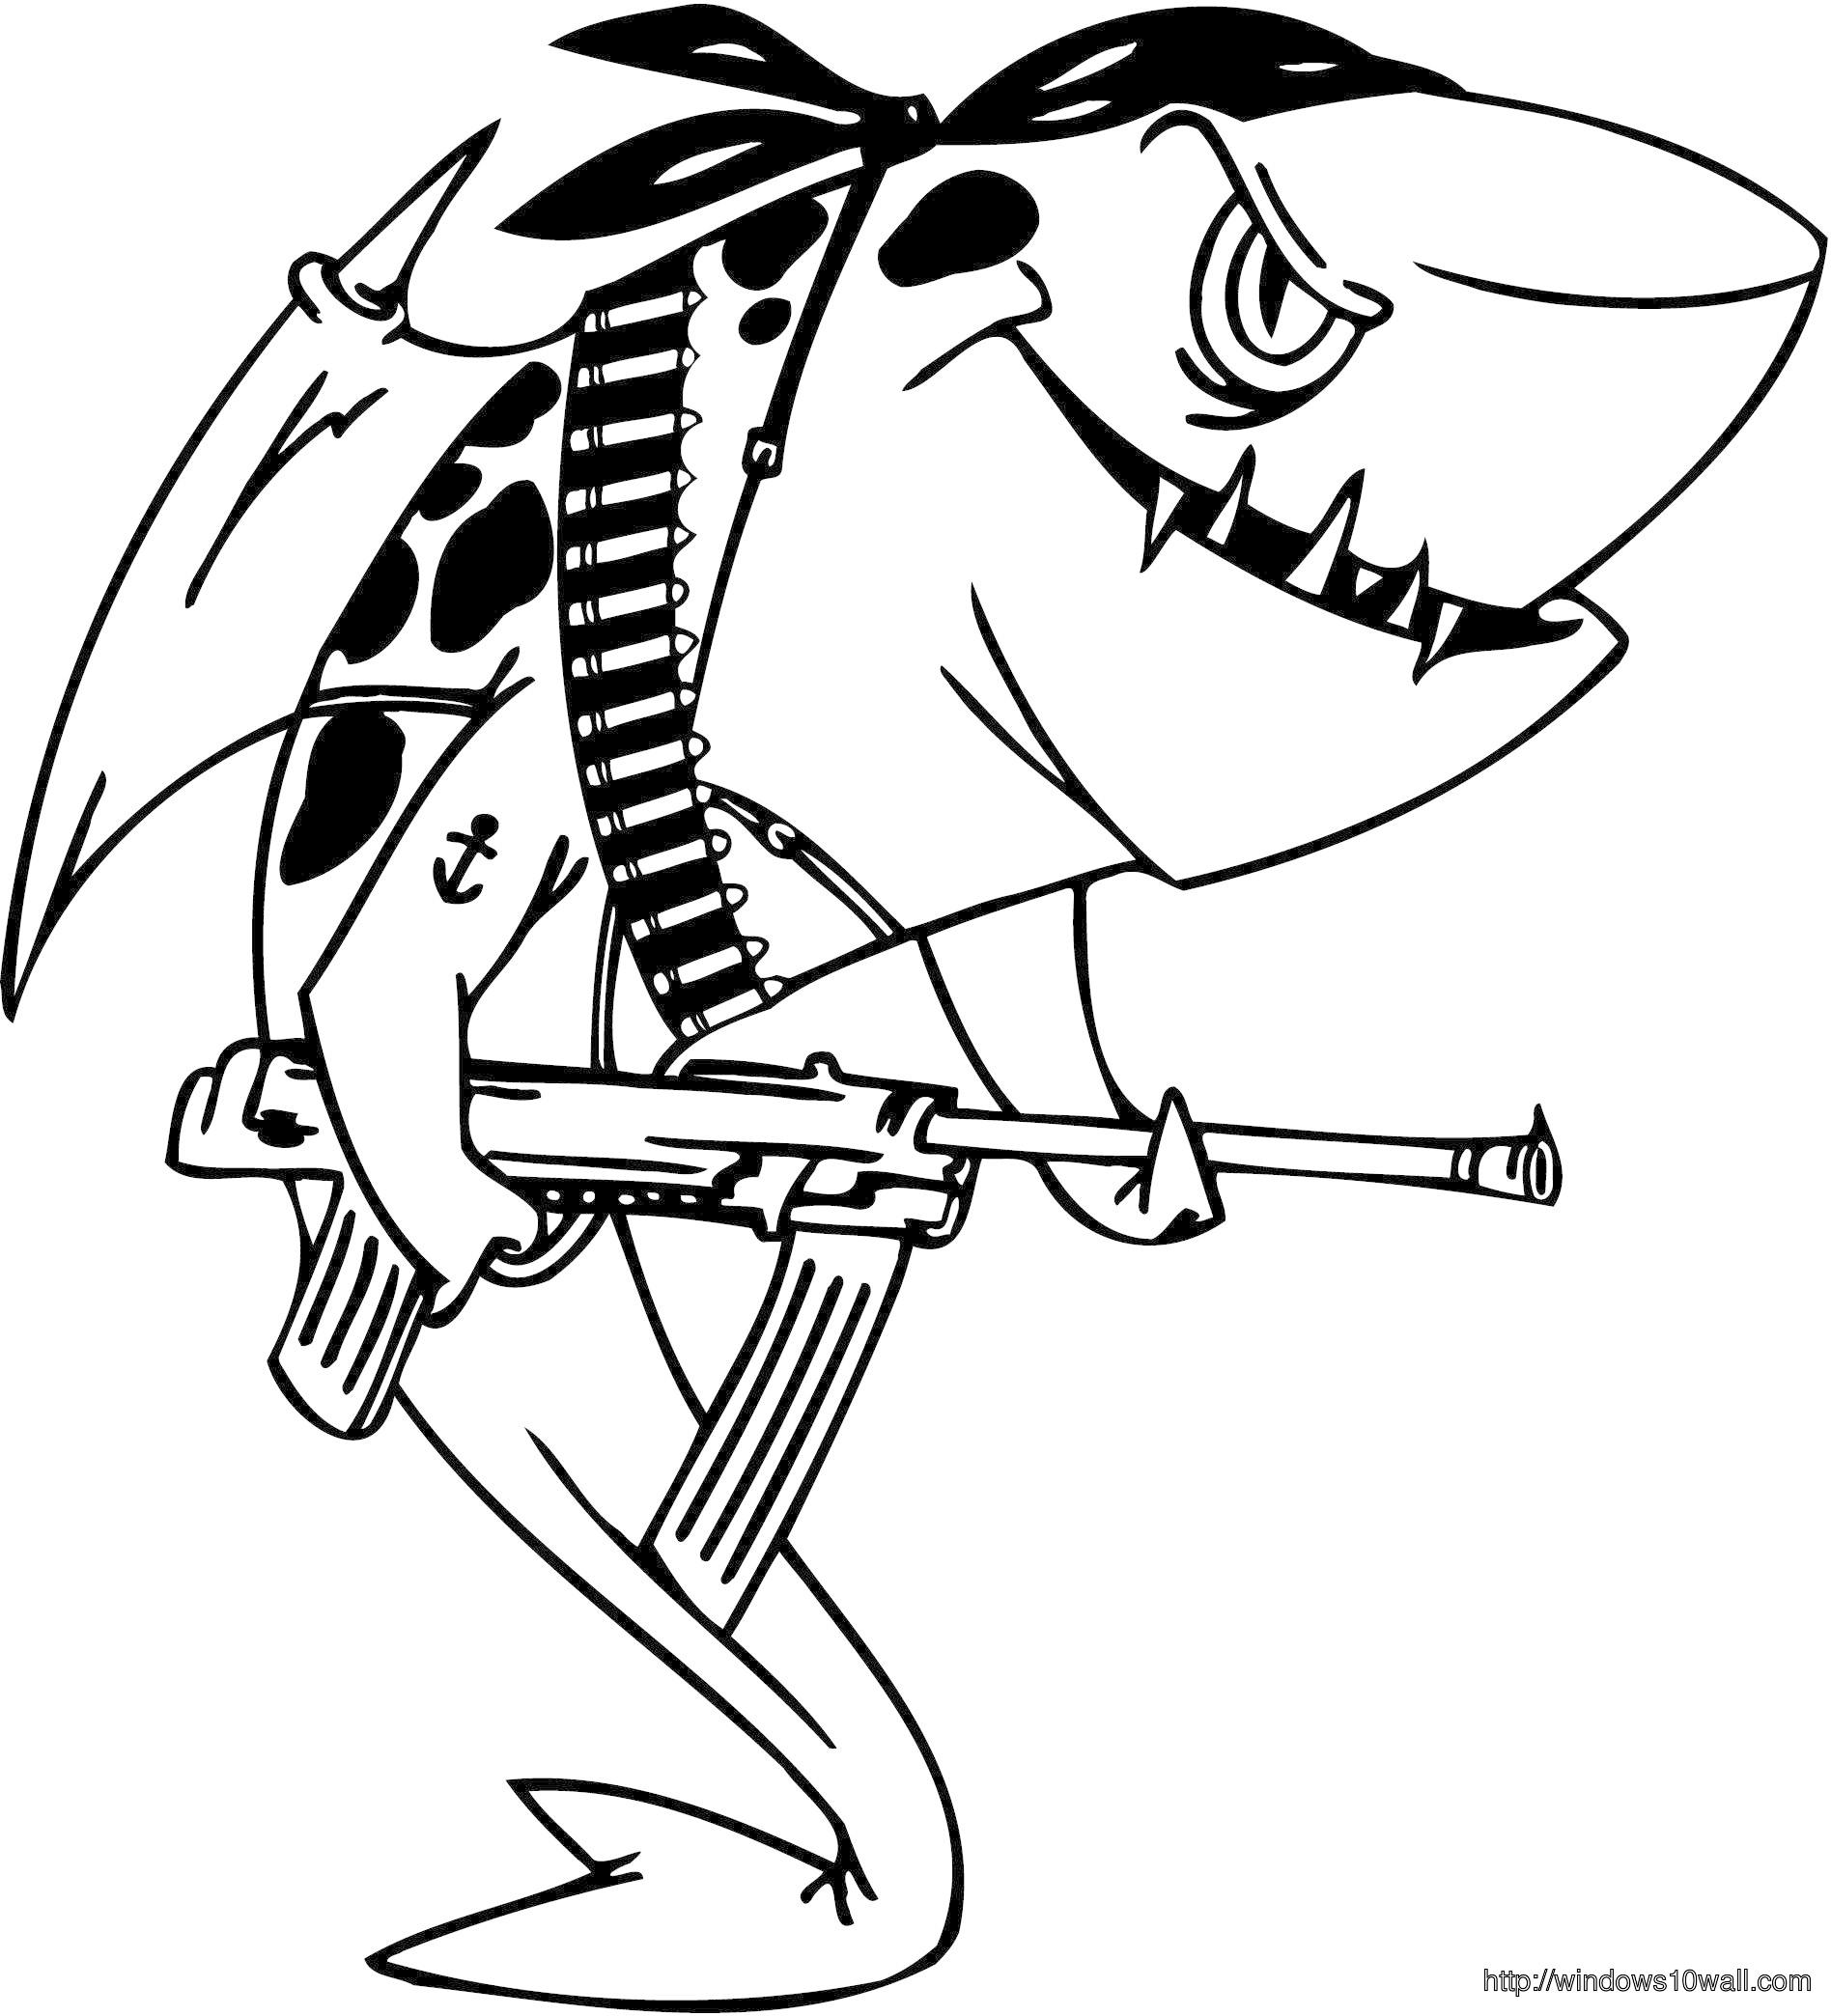 This is a graphic of Free Printable Shark Coloring Pages within stencil